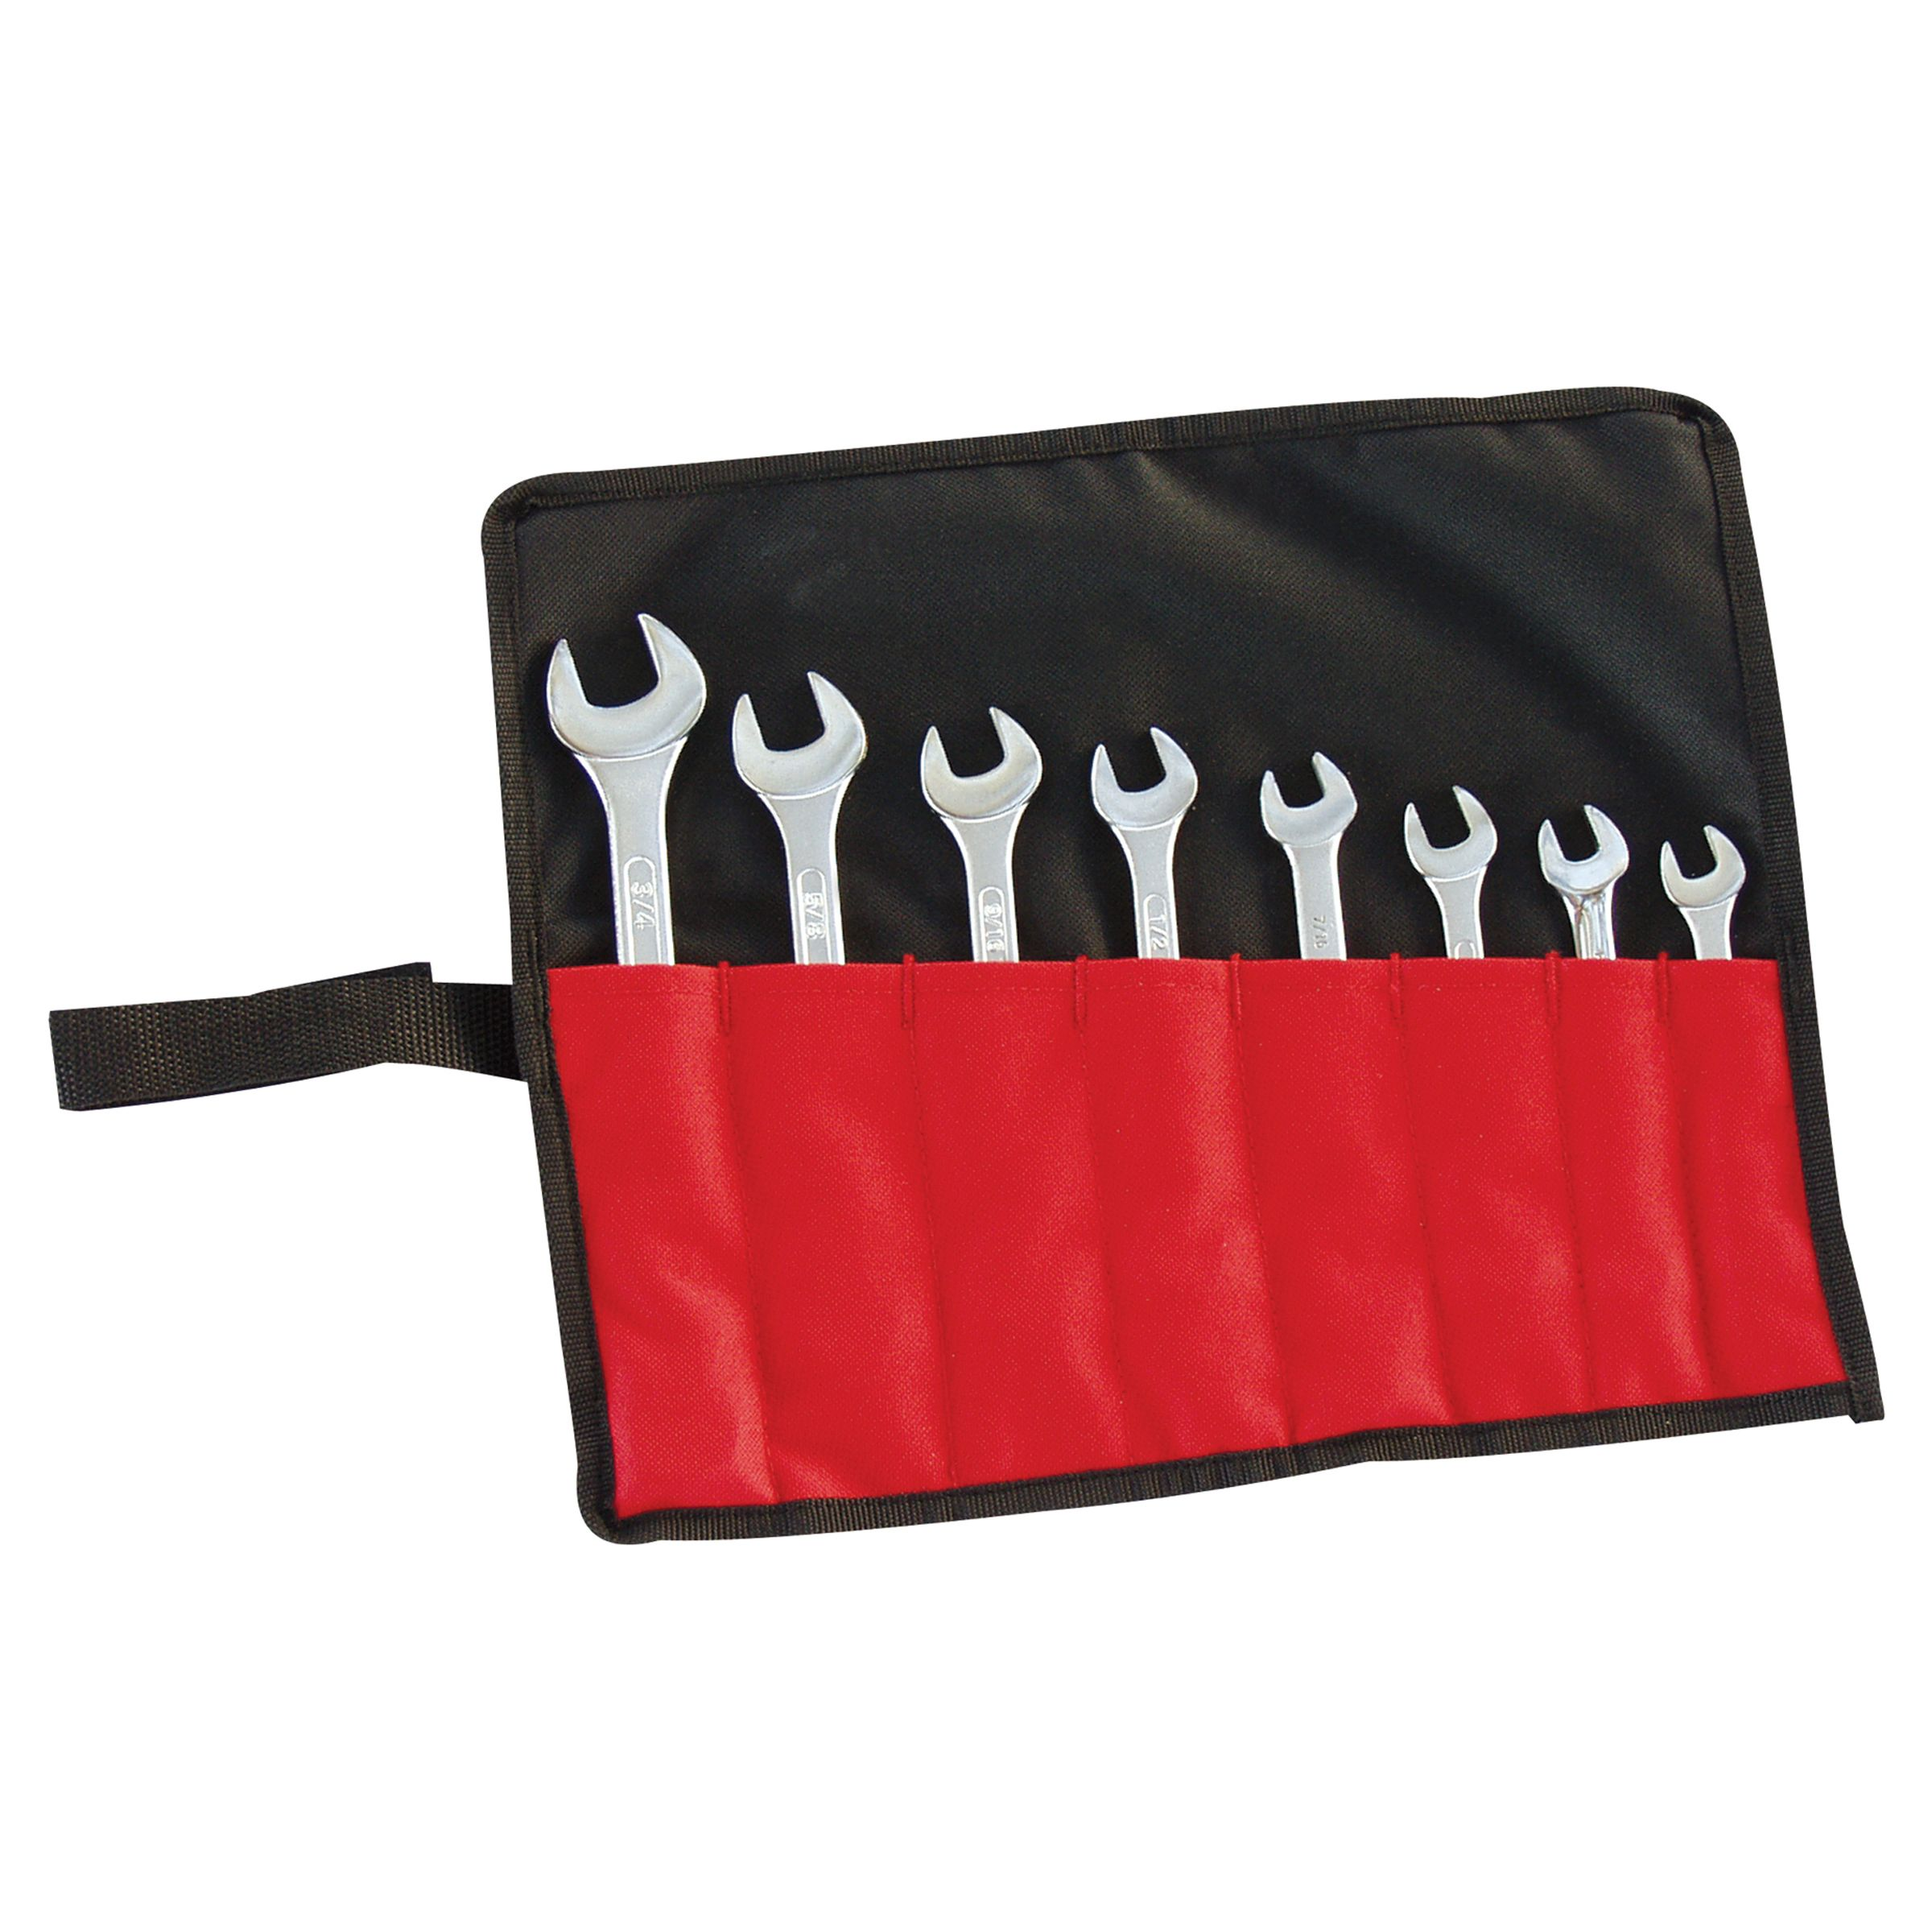 Craftsman Wrench Tool Roll Up Pouch Shop Your Way